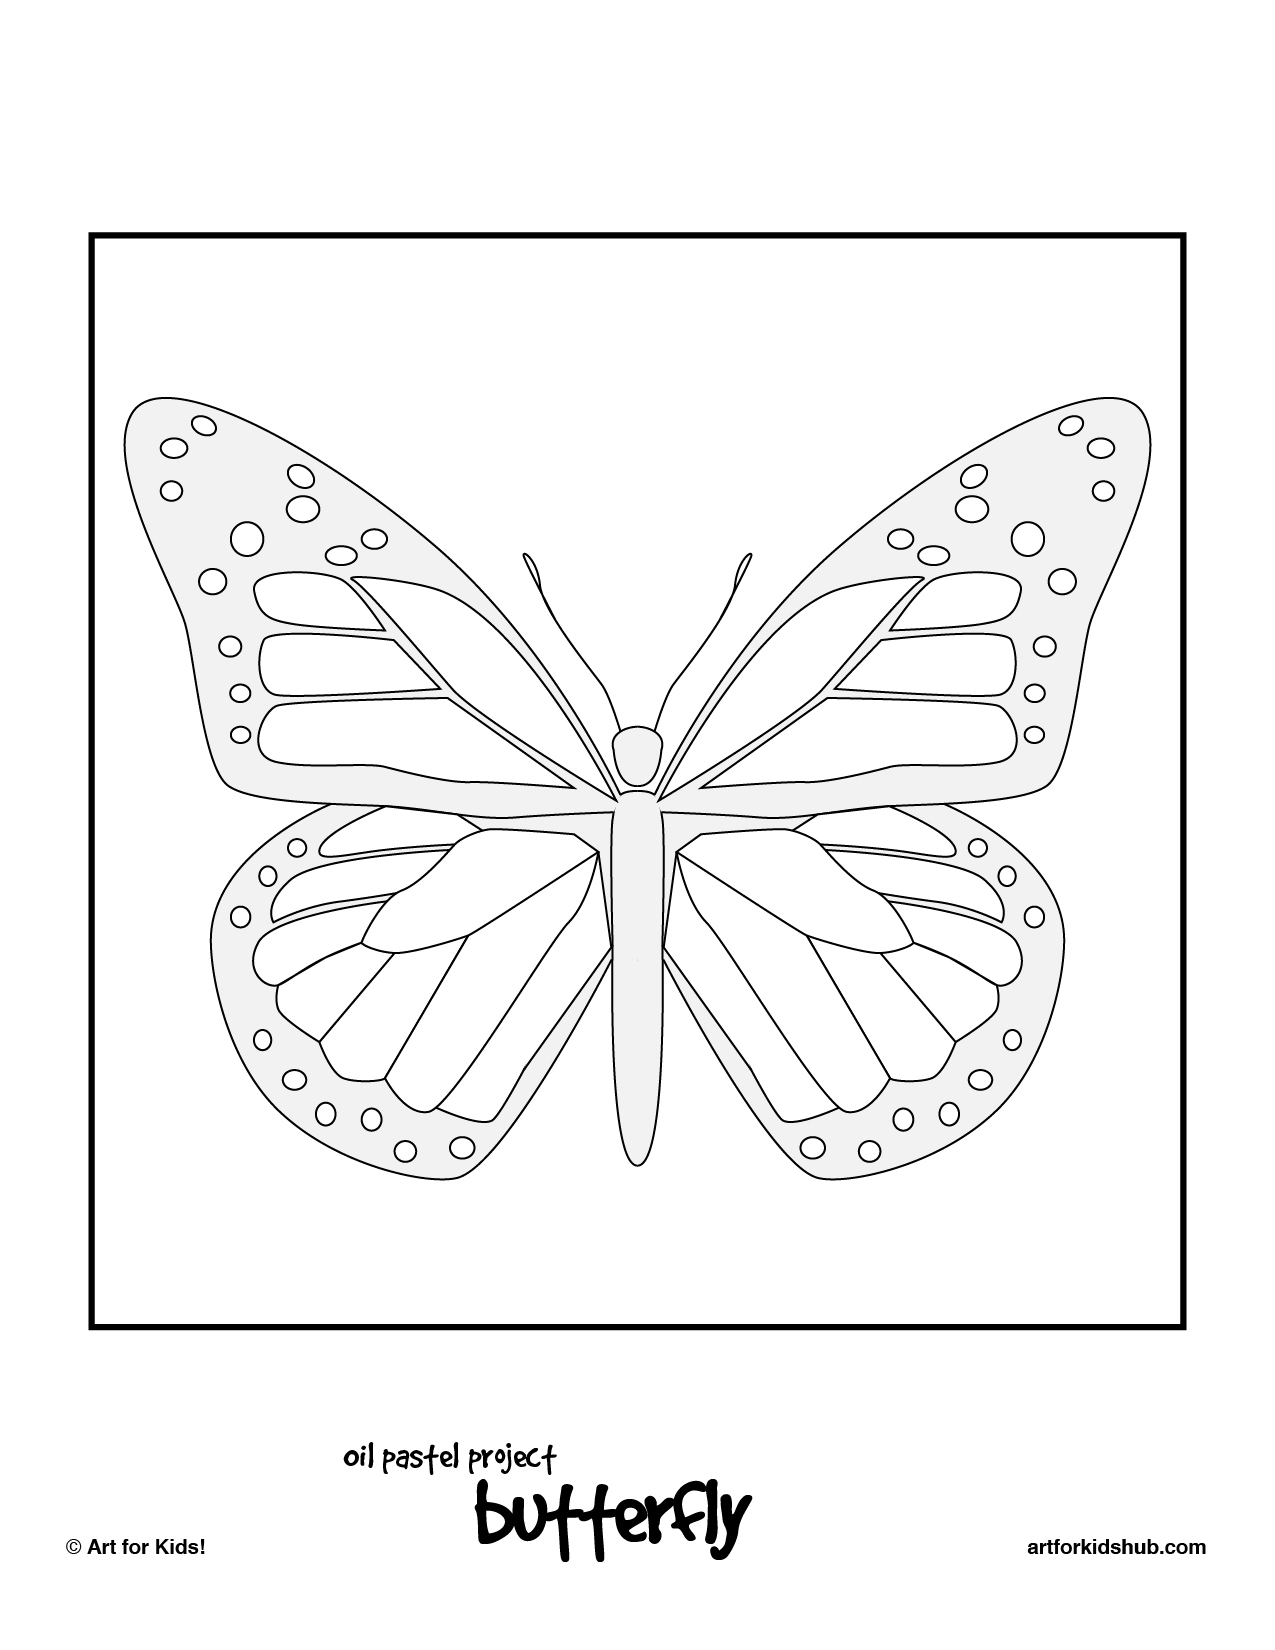 Worksheet Monarch Butterfly Worksheets oil pastel art project monarch butterfly for kids hub download and print the free image